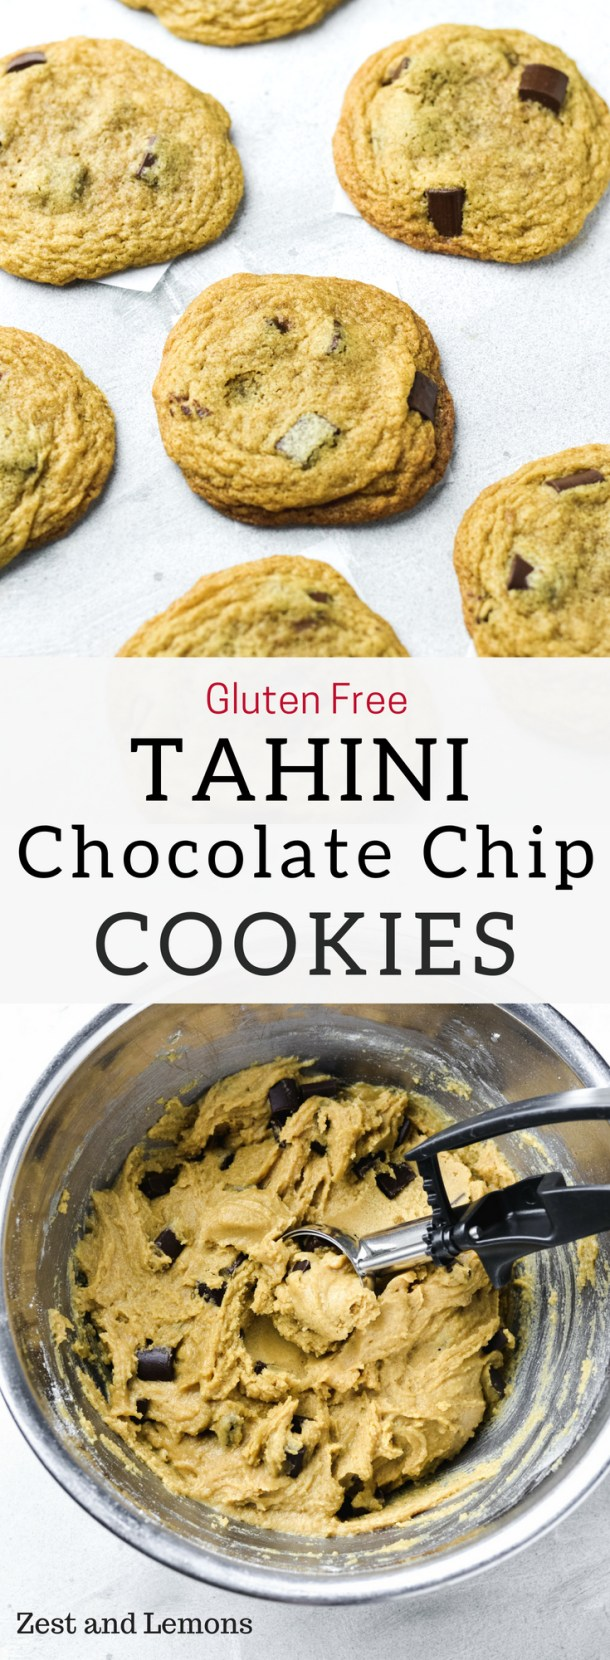 These thin and chewy tahini chocolate chip cookies have a slight nutty taste, and are gluten free! - Zest and Lemons #glutenfreecookies #tahinicookies #chocolatechipcookies